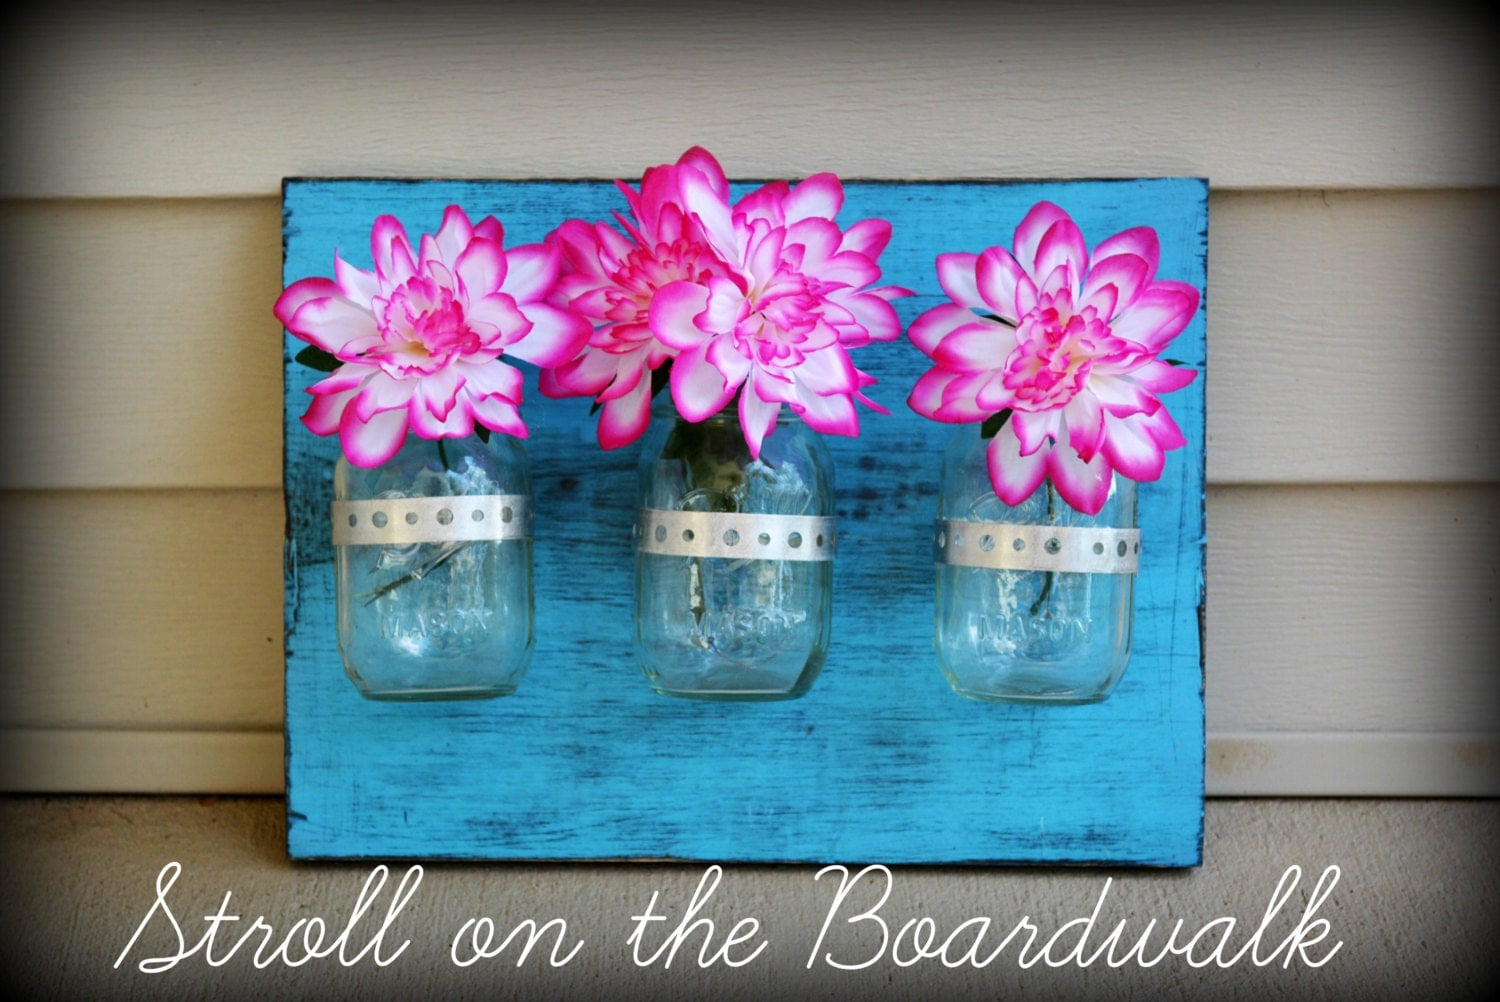 Wall Decor With Mason Jars : Wall decor blue mason jars board by strollontheboardwalk